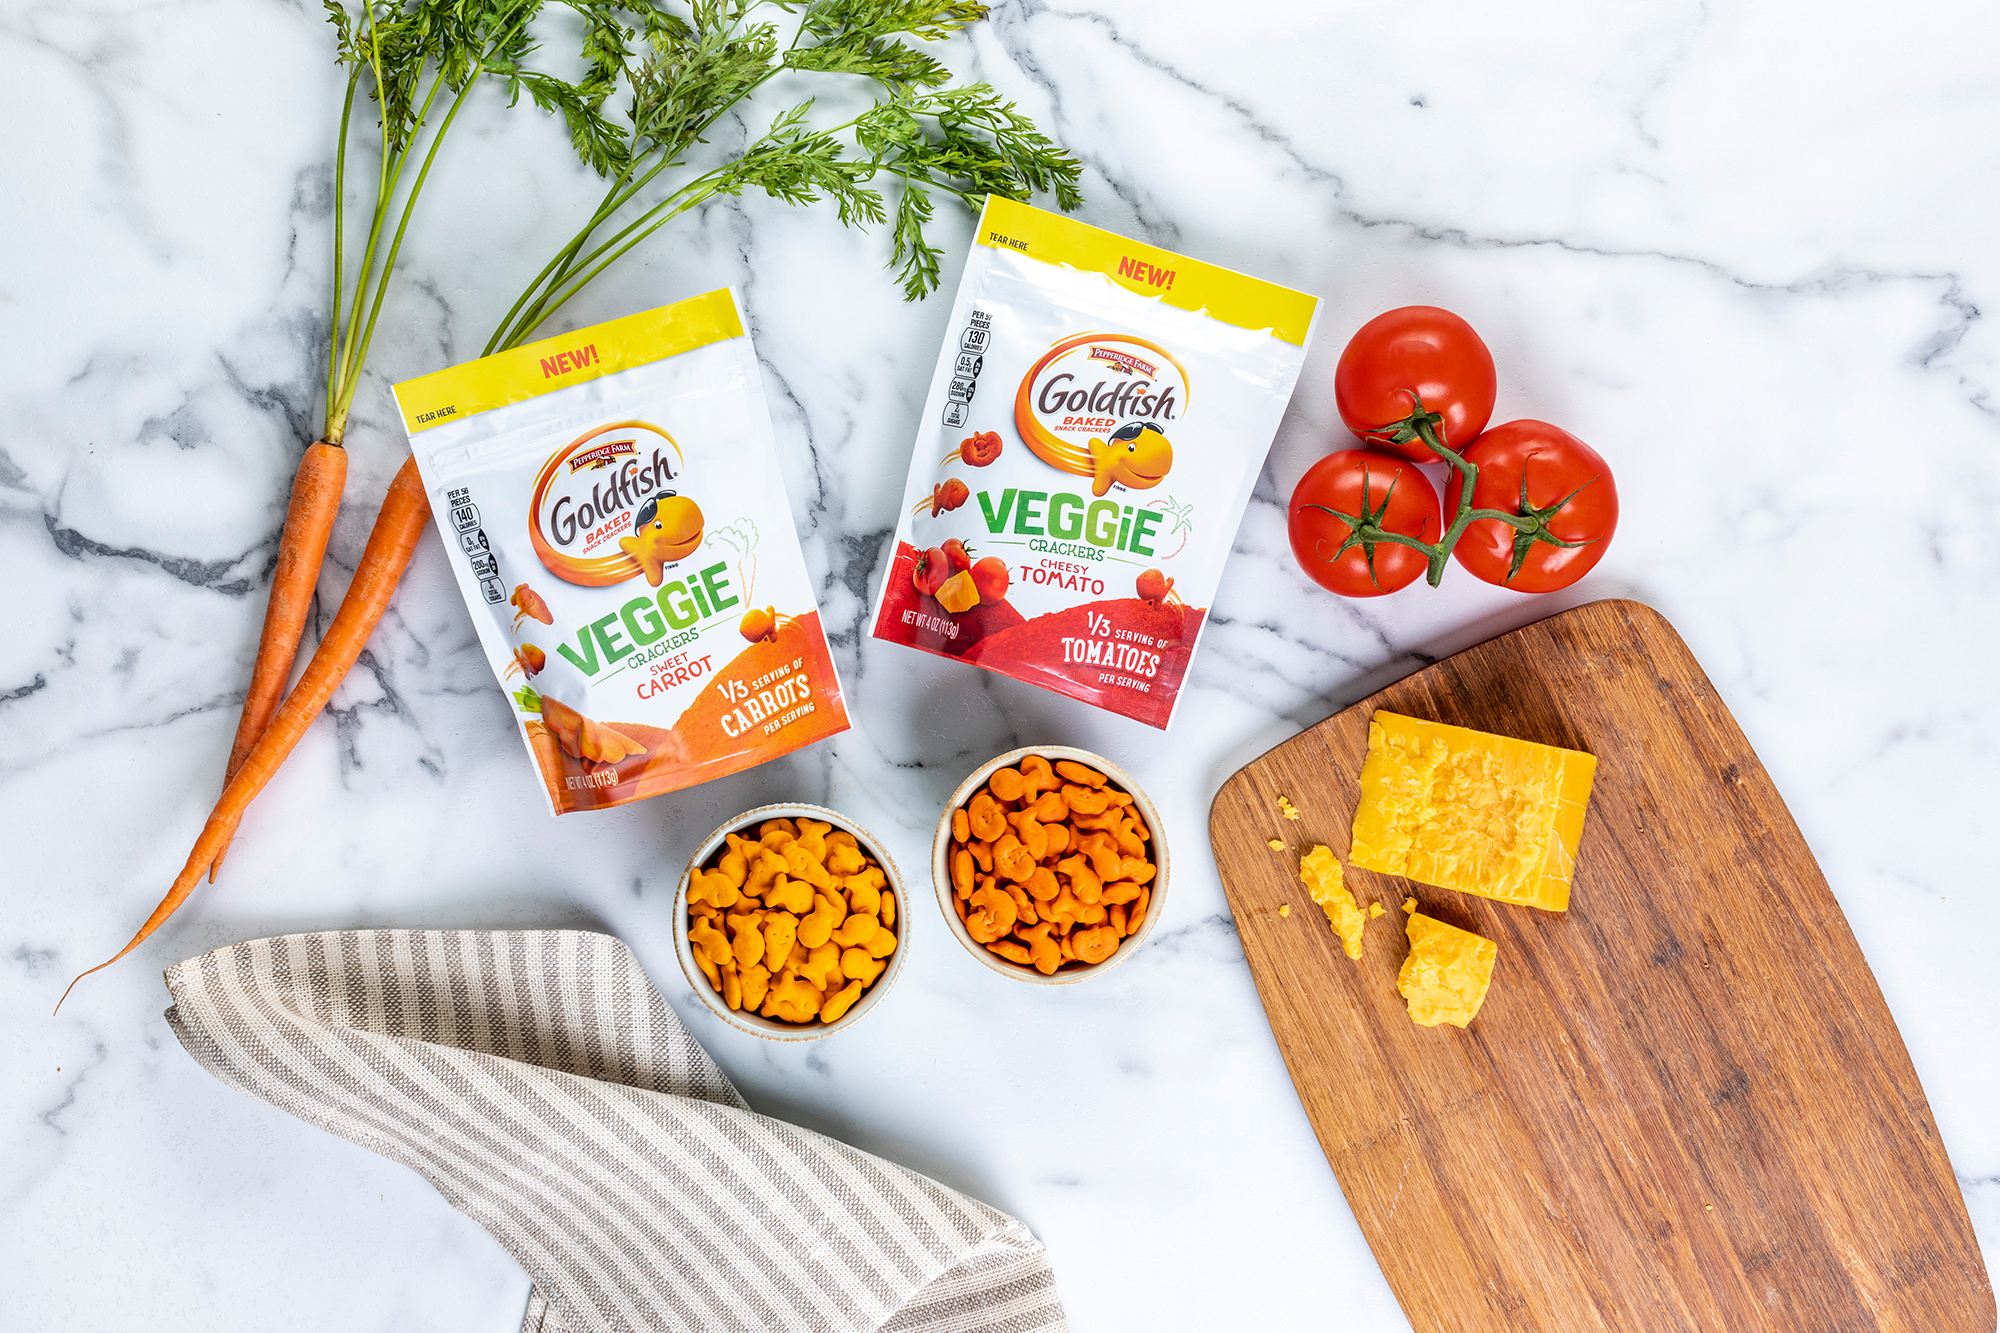 Veggie Goldfish crackers in sweet carrot and cheesy tomato flavor are seen in an image released by Campbell in December 2019.